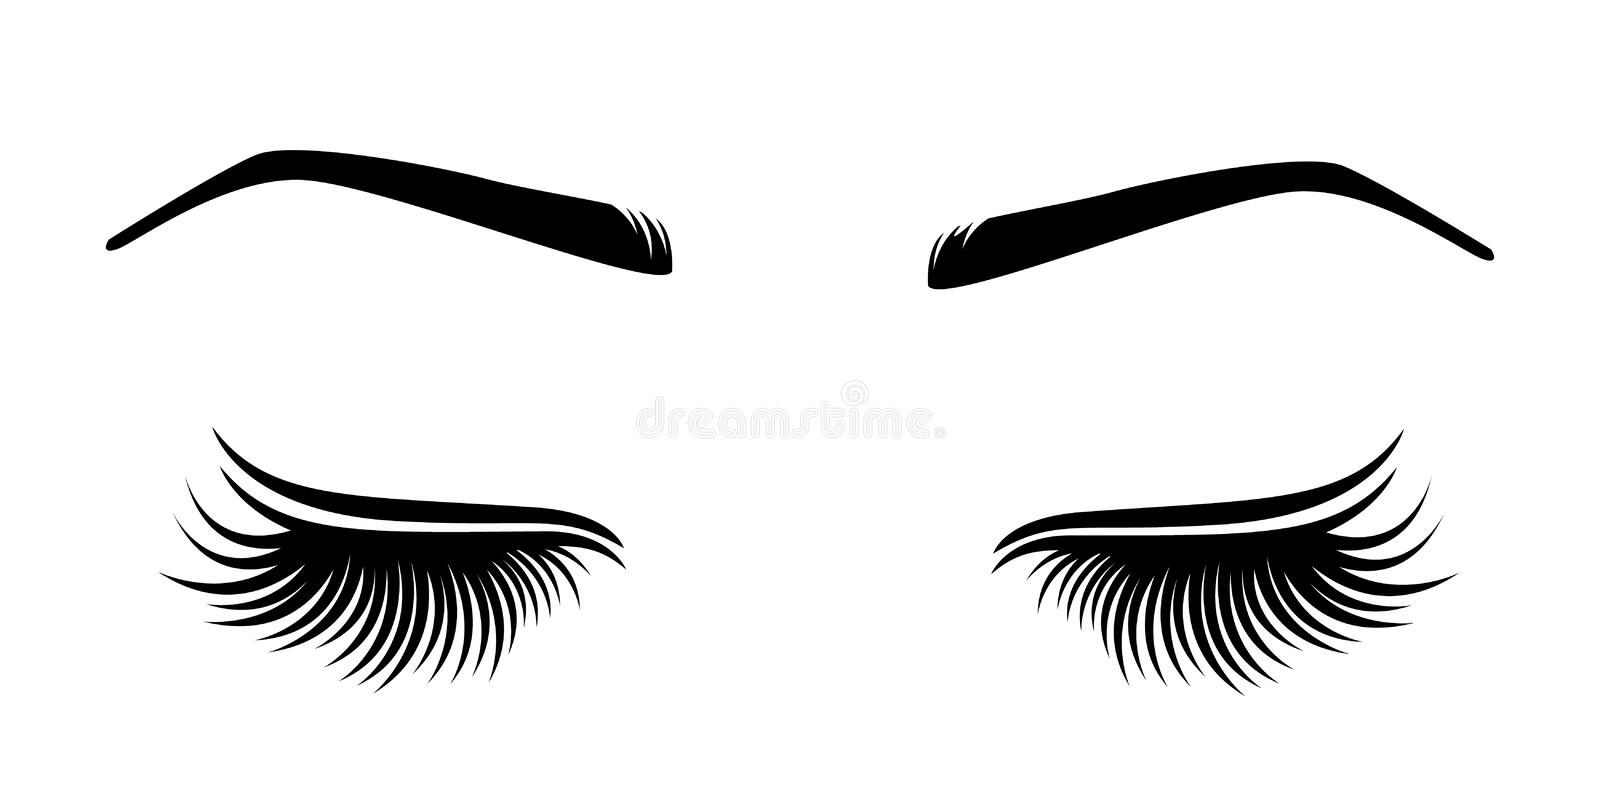 Vector illustration of lashes and brow. royalty free illustration